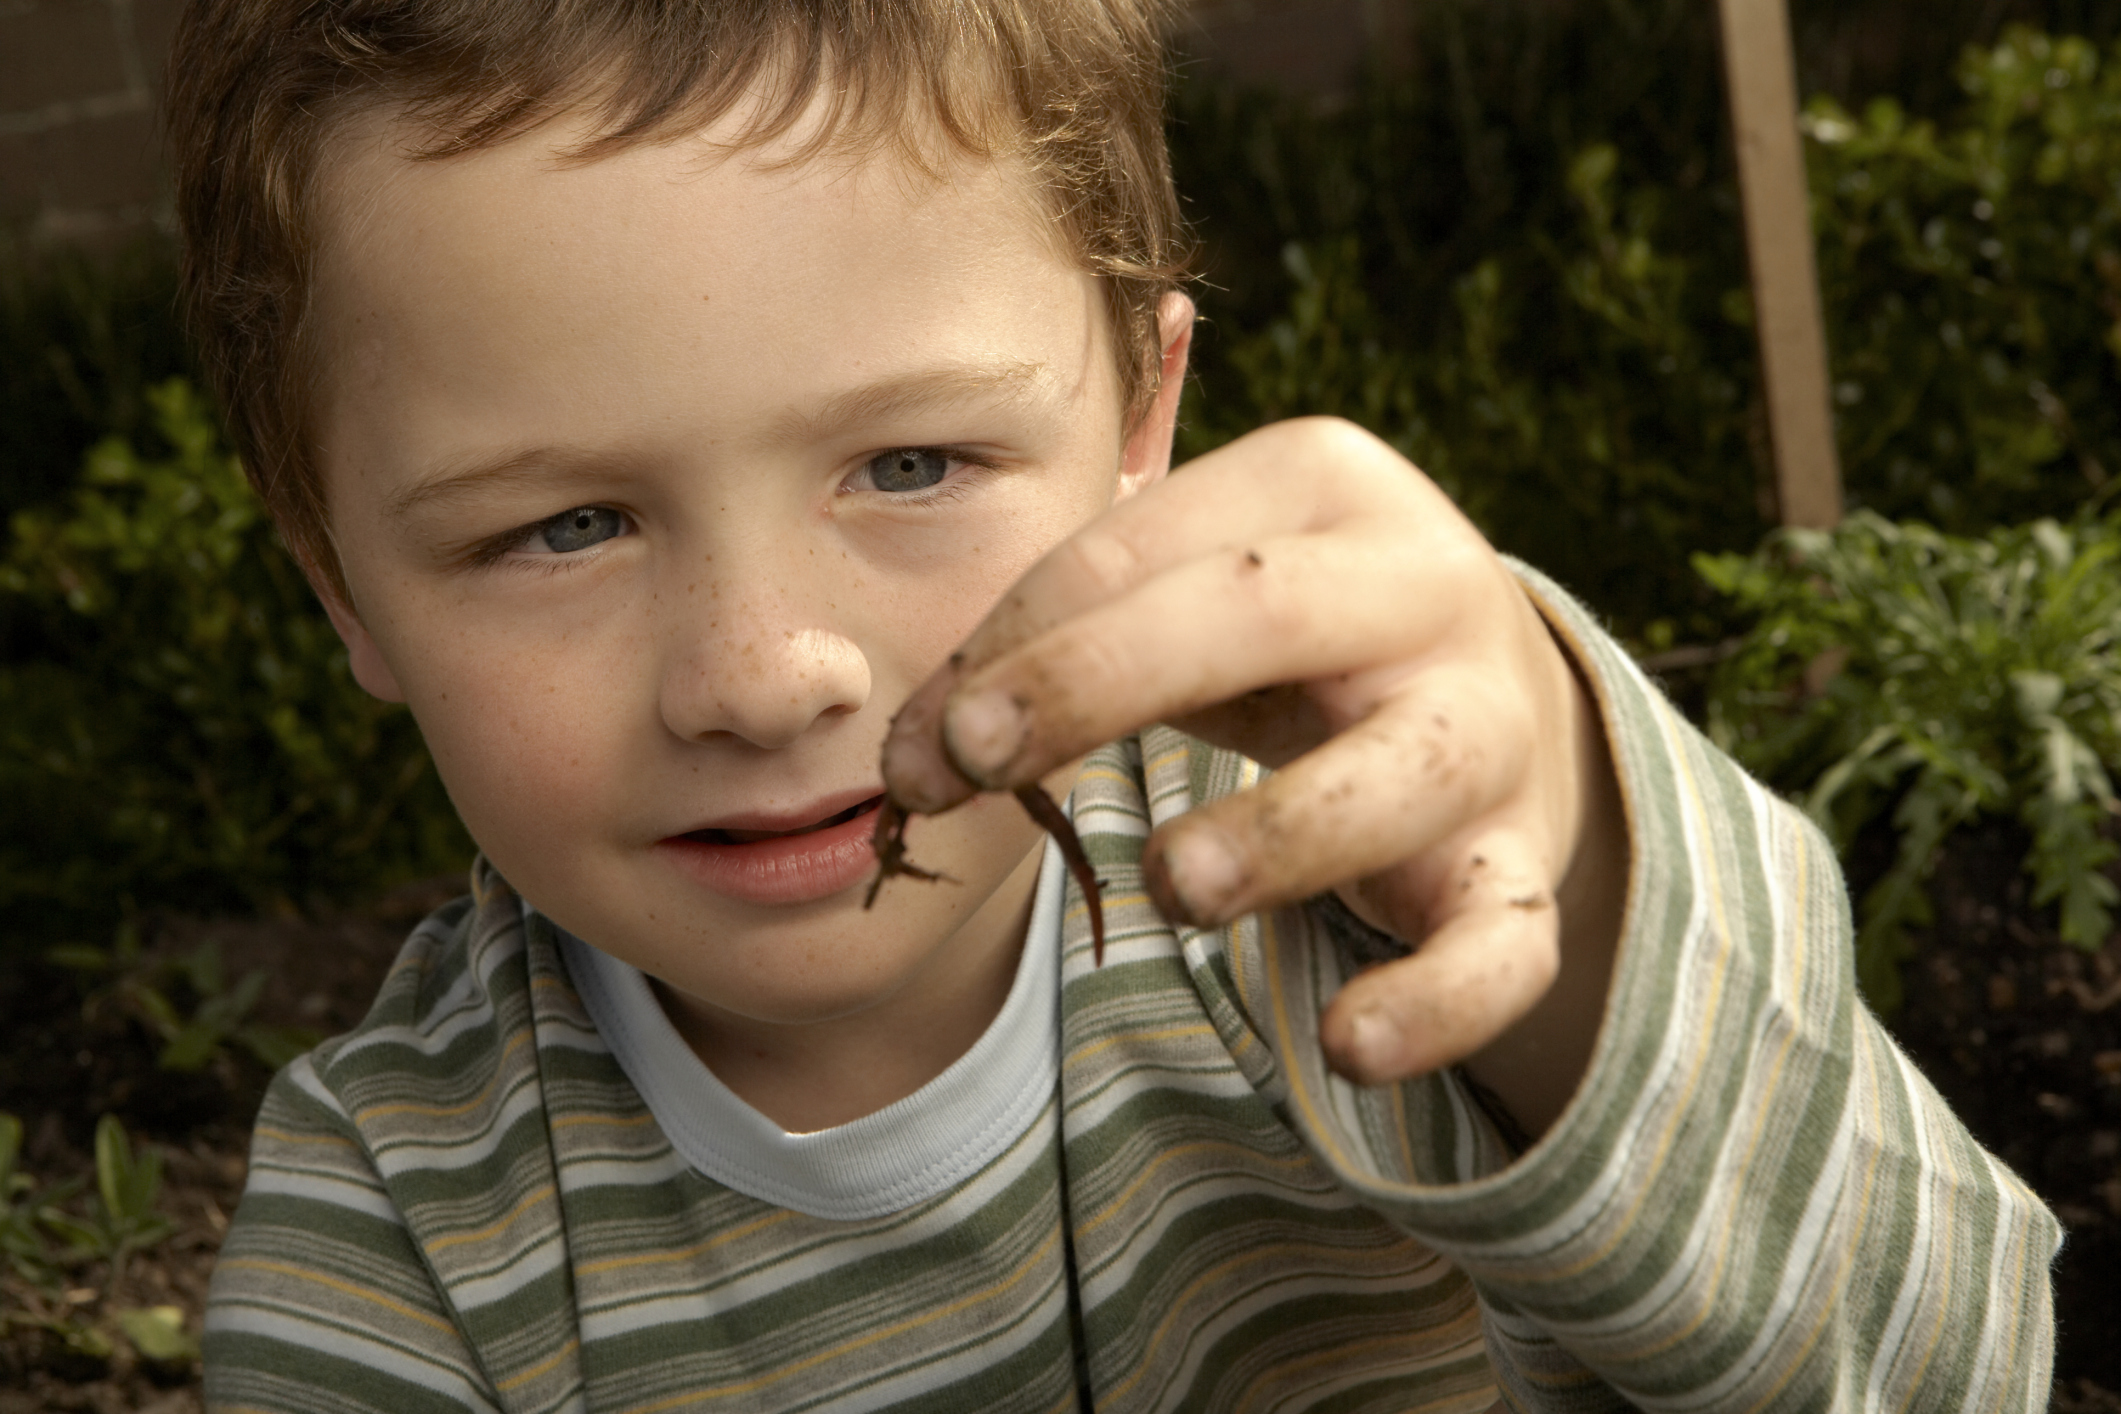 Insidious worms: symptoms in a child and an adult